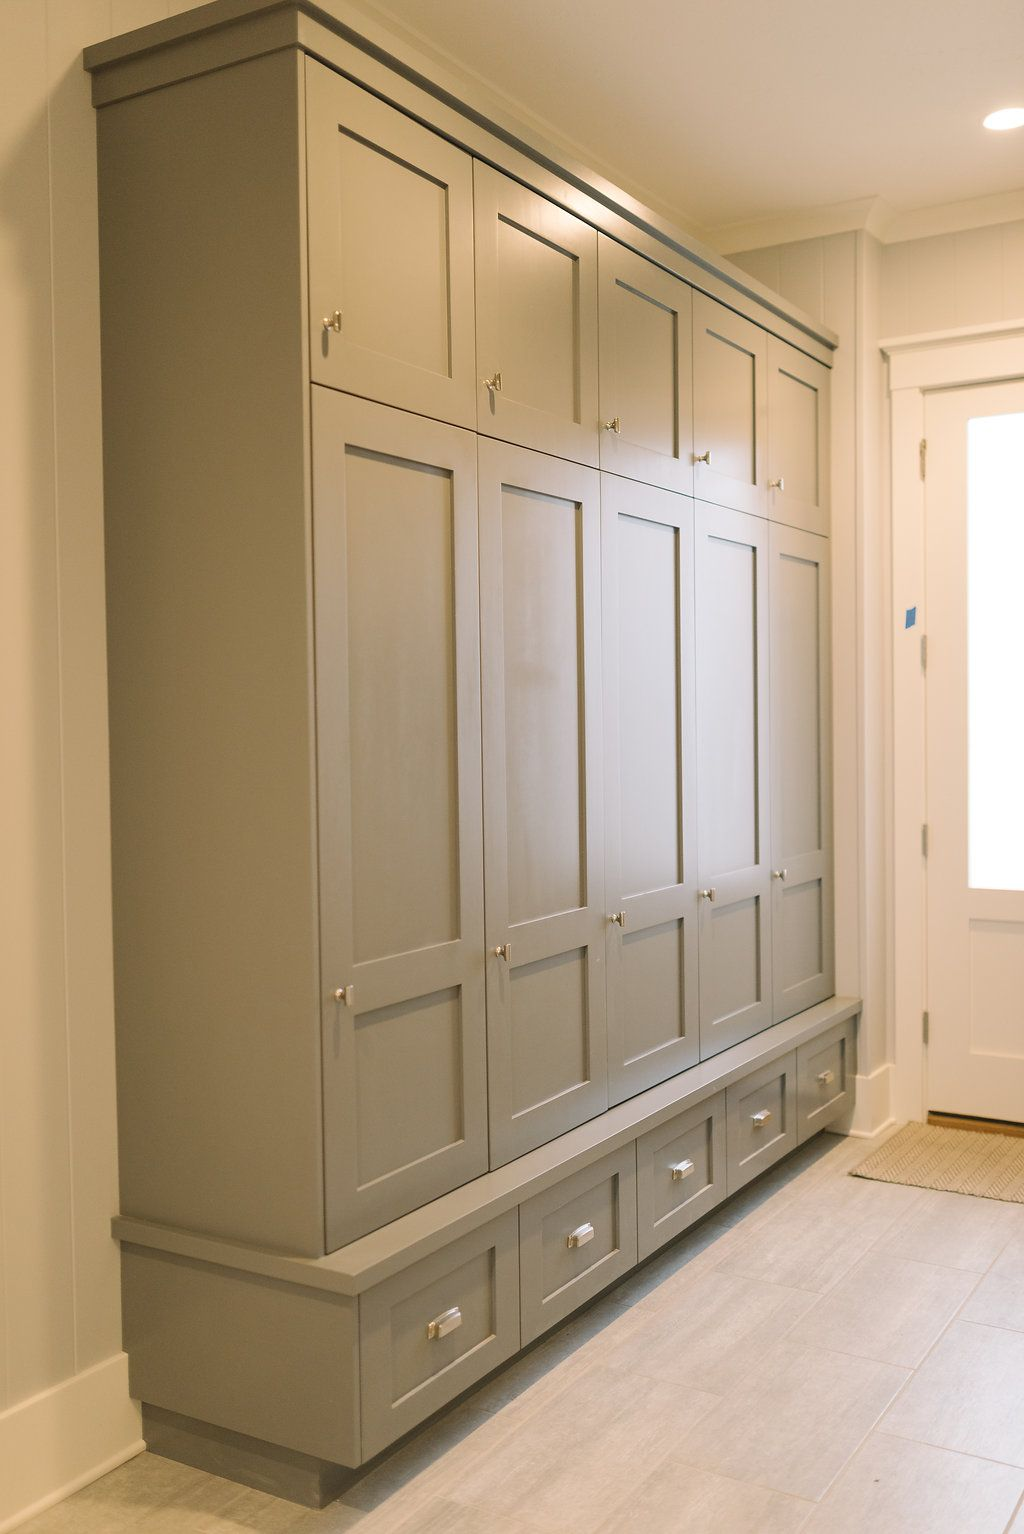 Mudroom lockers with doors - Mudroom Lockers Four Chairs Furniture